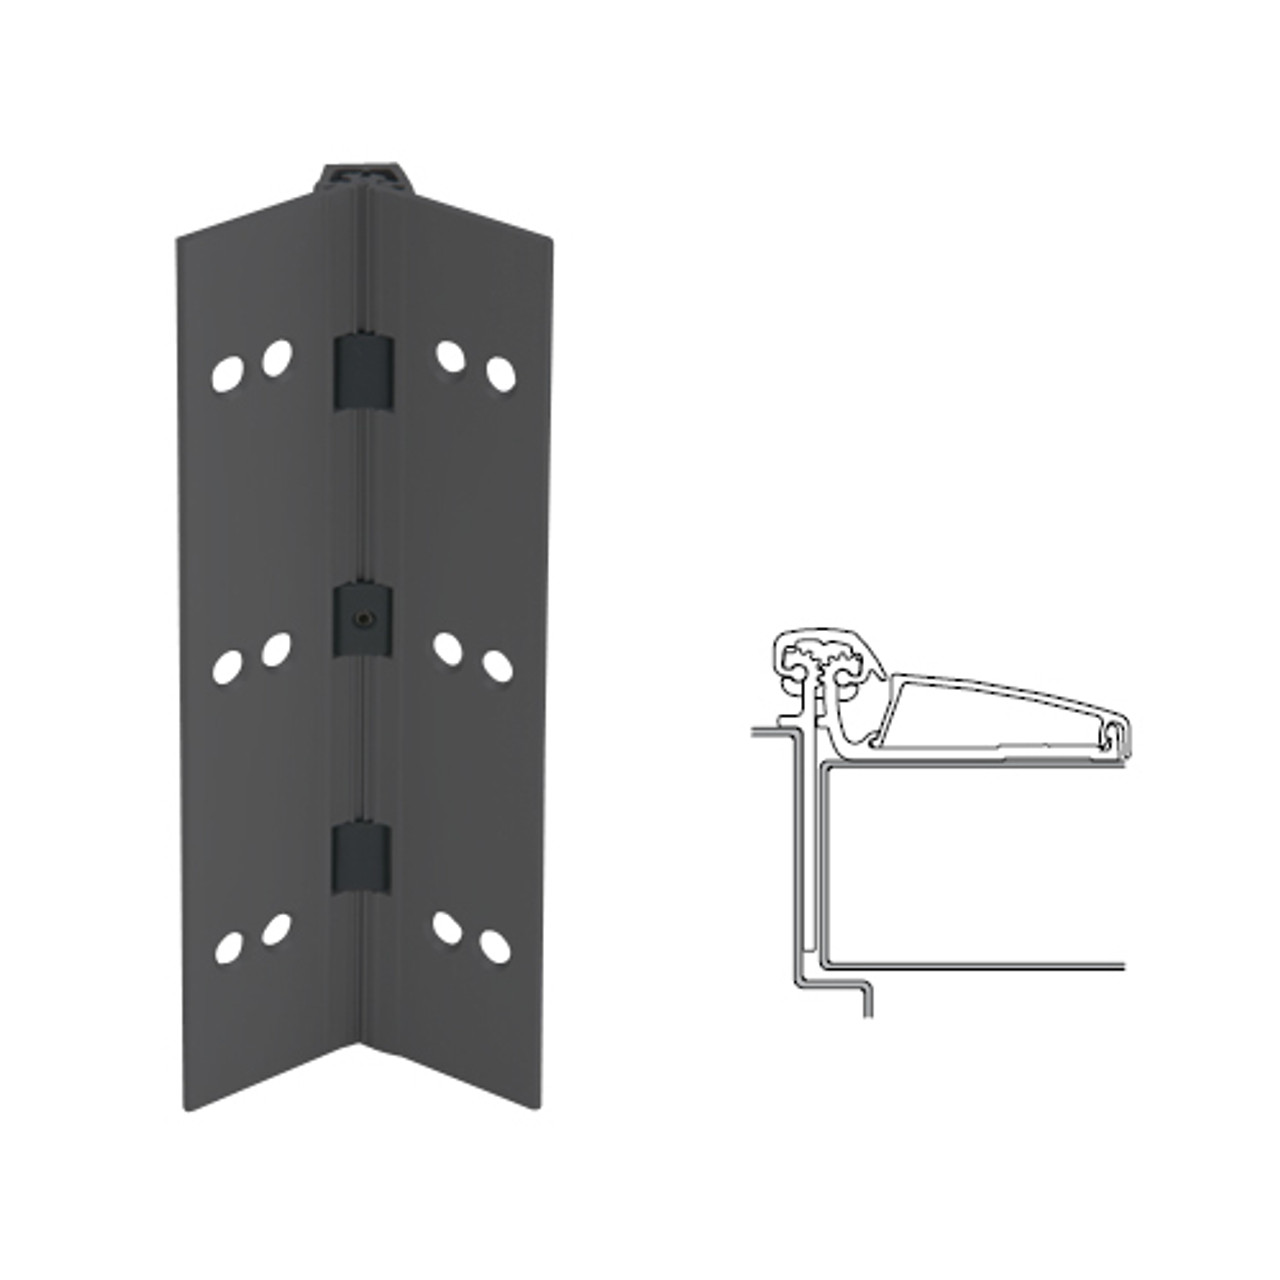 046XY-315AN-83-TFWD IVES Adjustable Half Surface Continuous Geared Hinges with Thread Forming Screws in Anodized Black